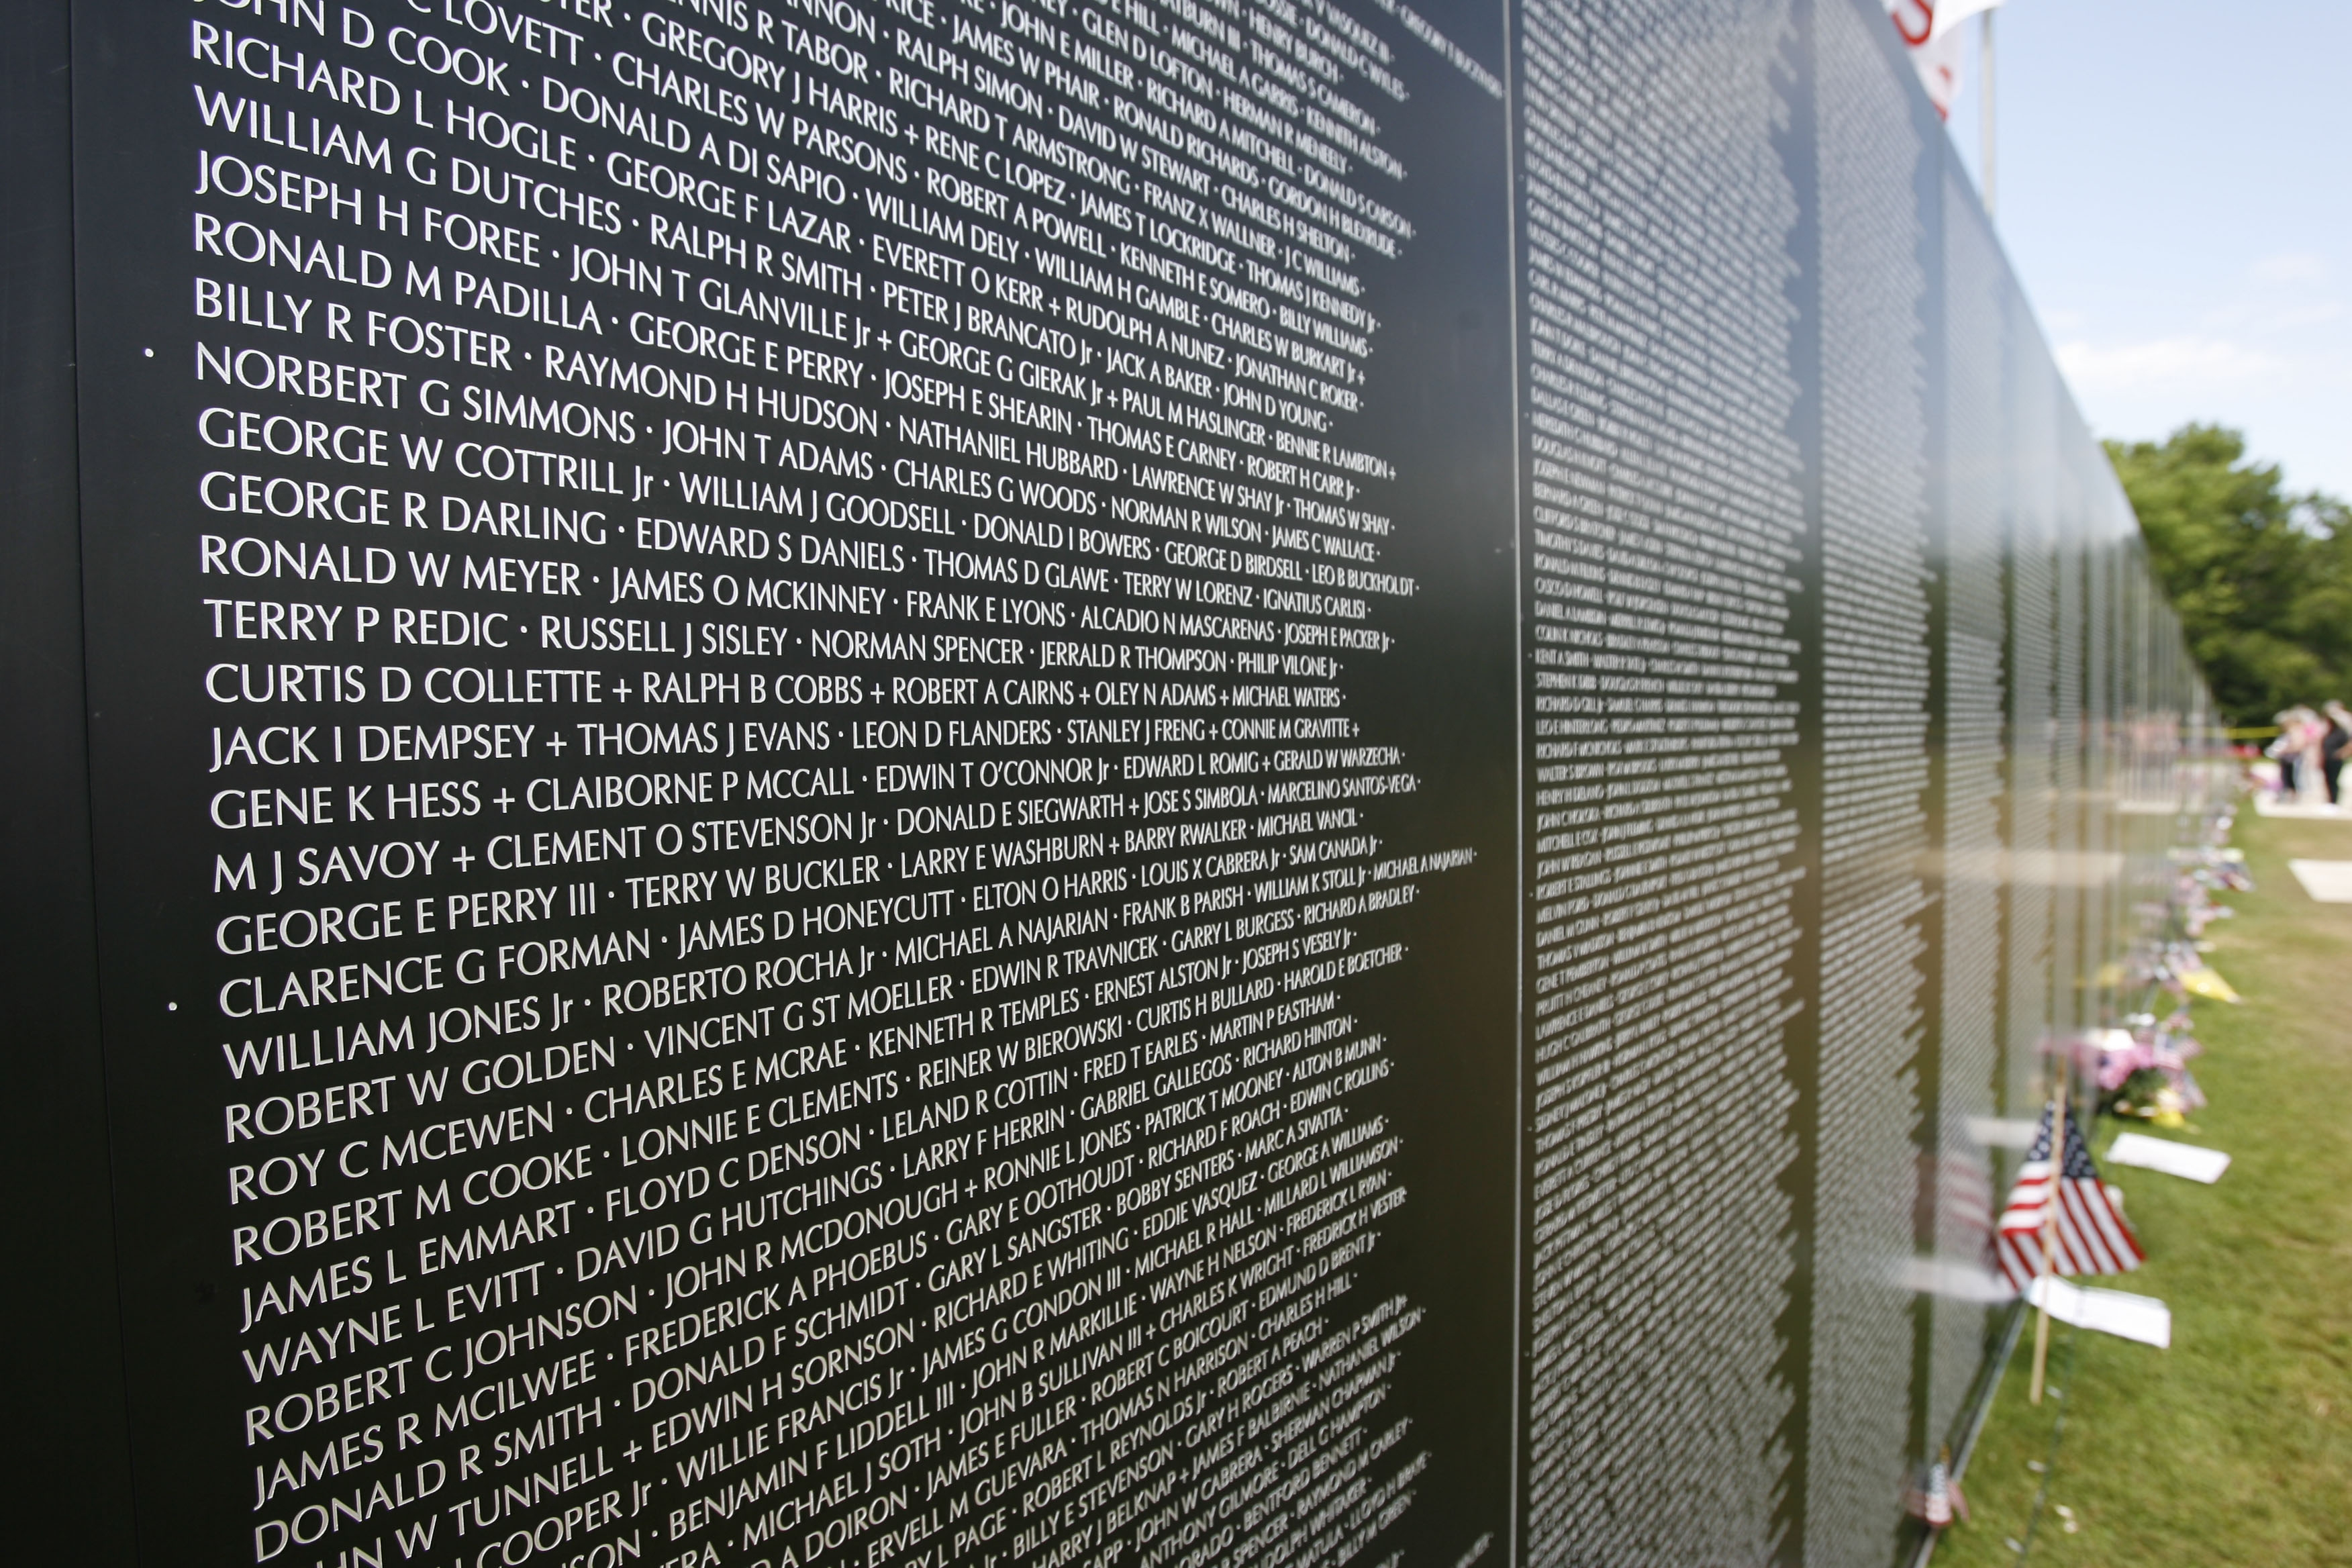 Visitors are expected to come from all over the Northeast to see the traveling replica of the Vietnam Veterans Memorial in Lewison.